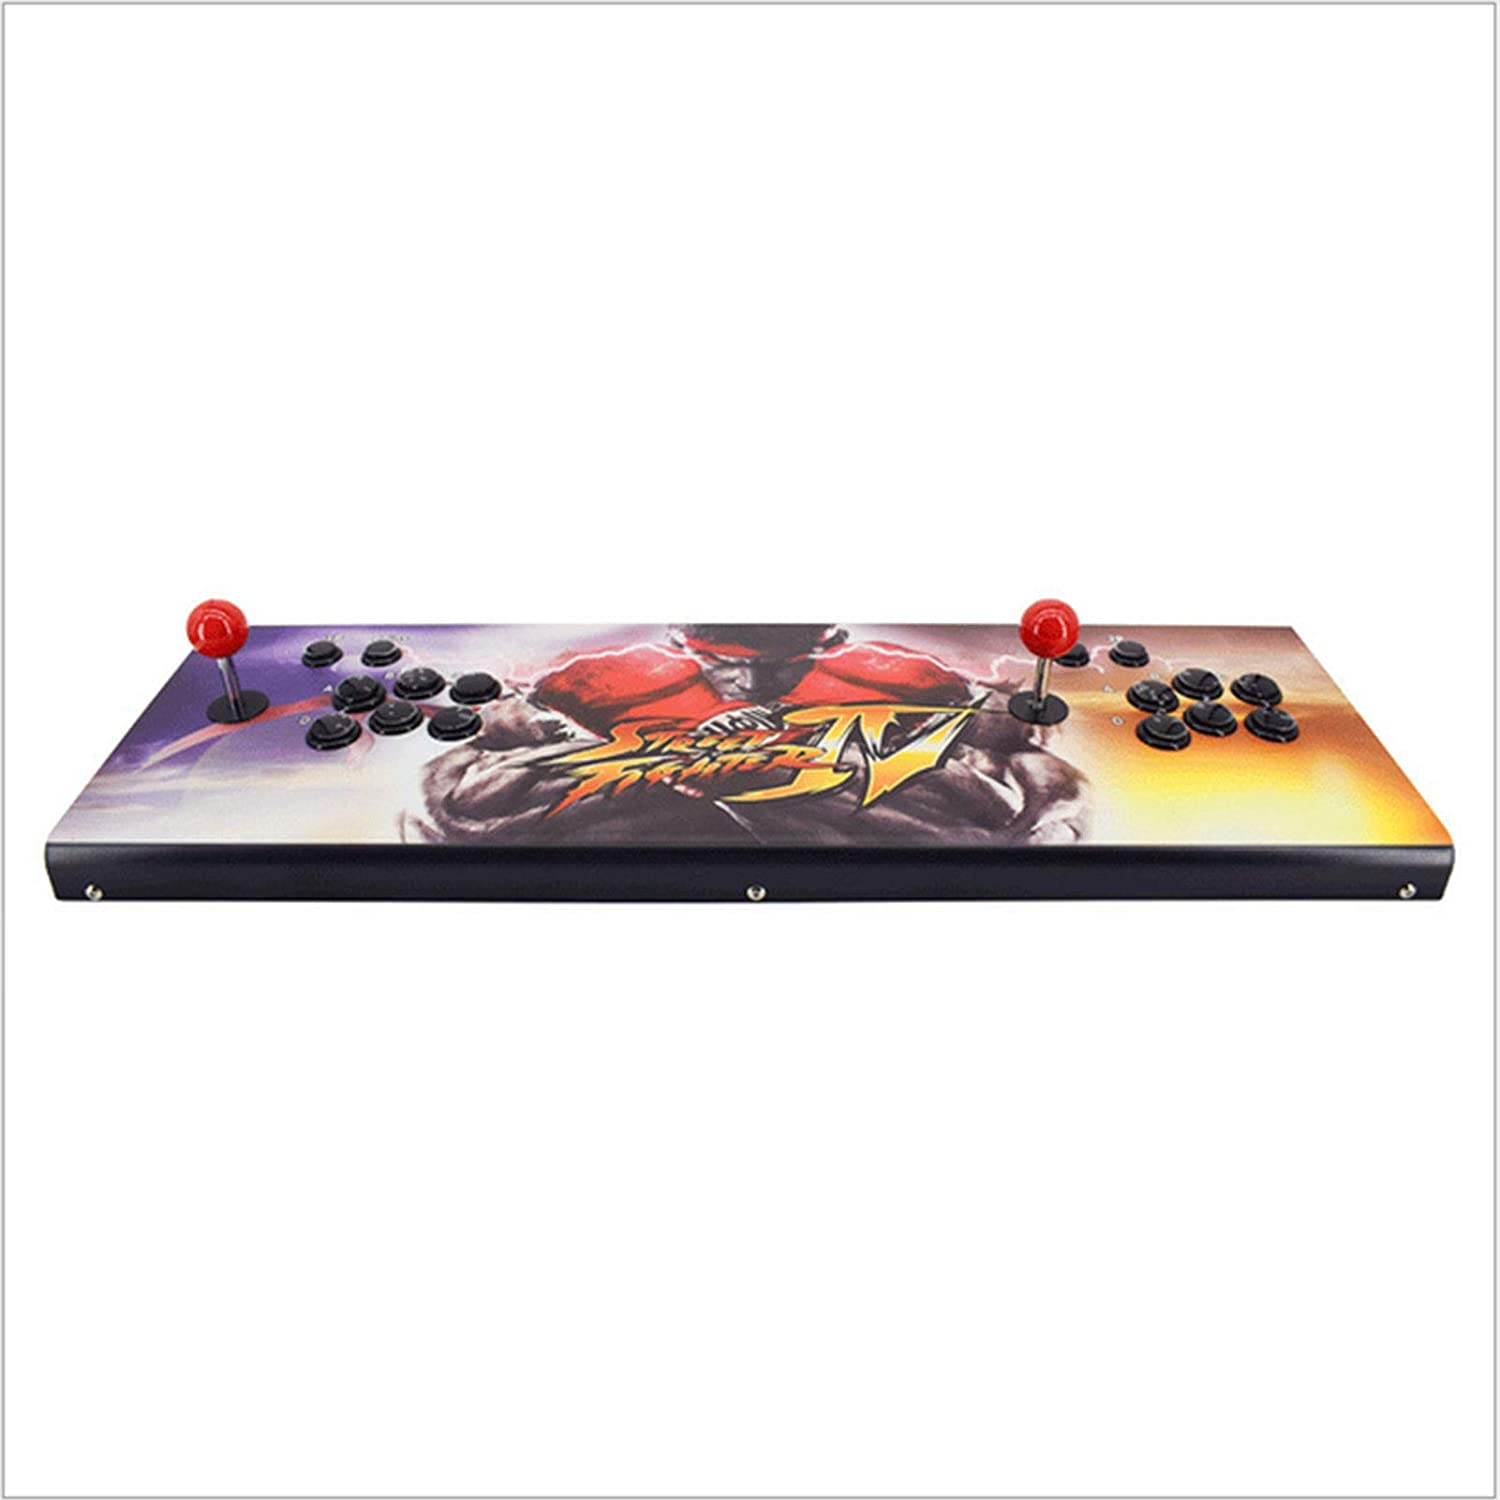 Wsaman 3D Recommended Game Console Popular shop is the lowest price challenge 2680 1920x10 Family Full HD